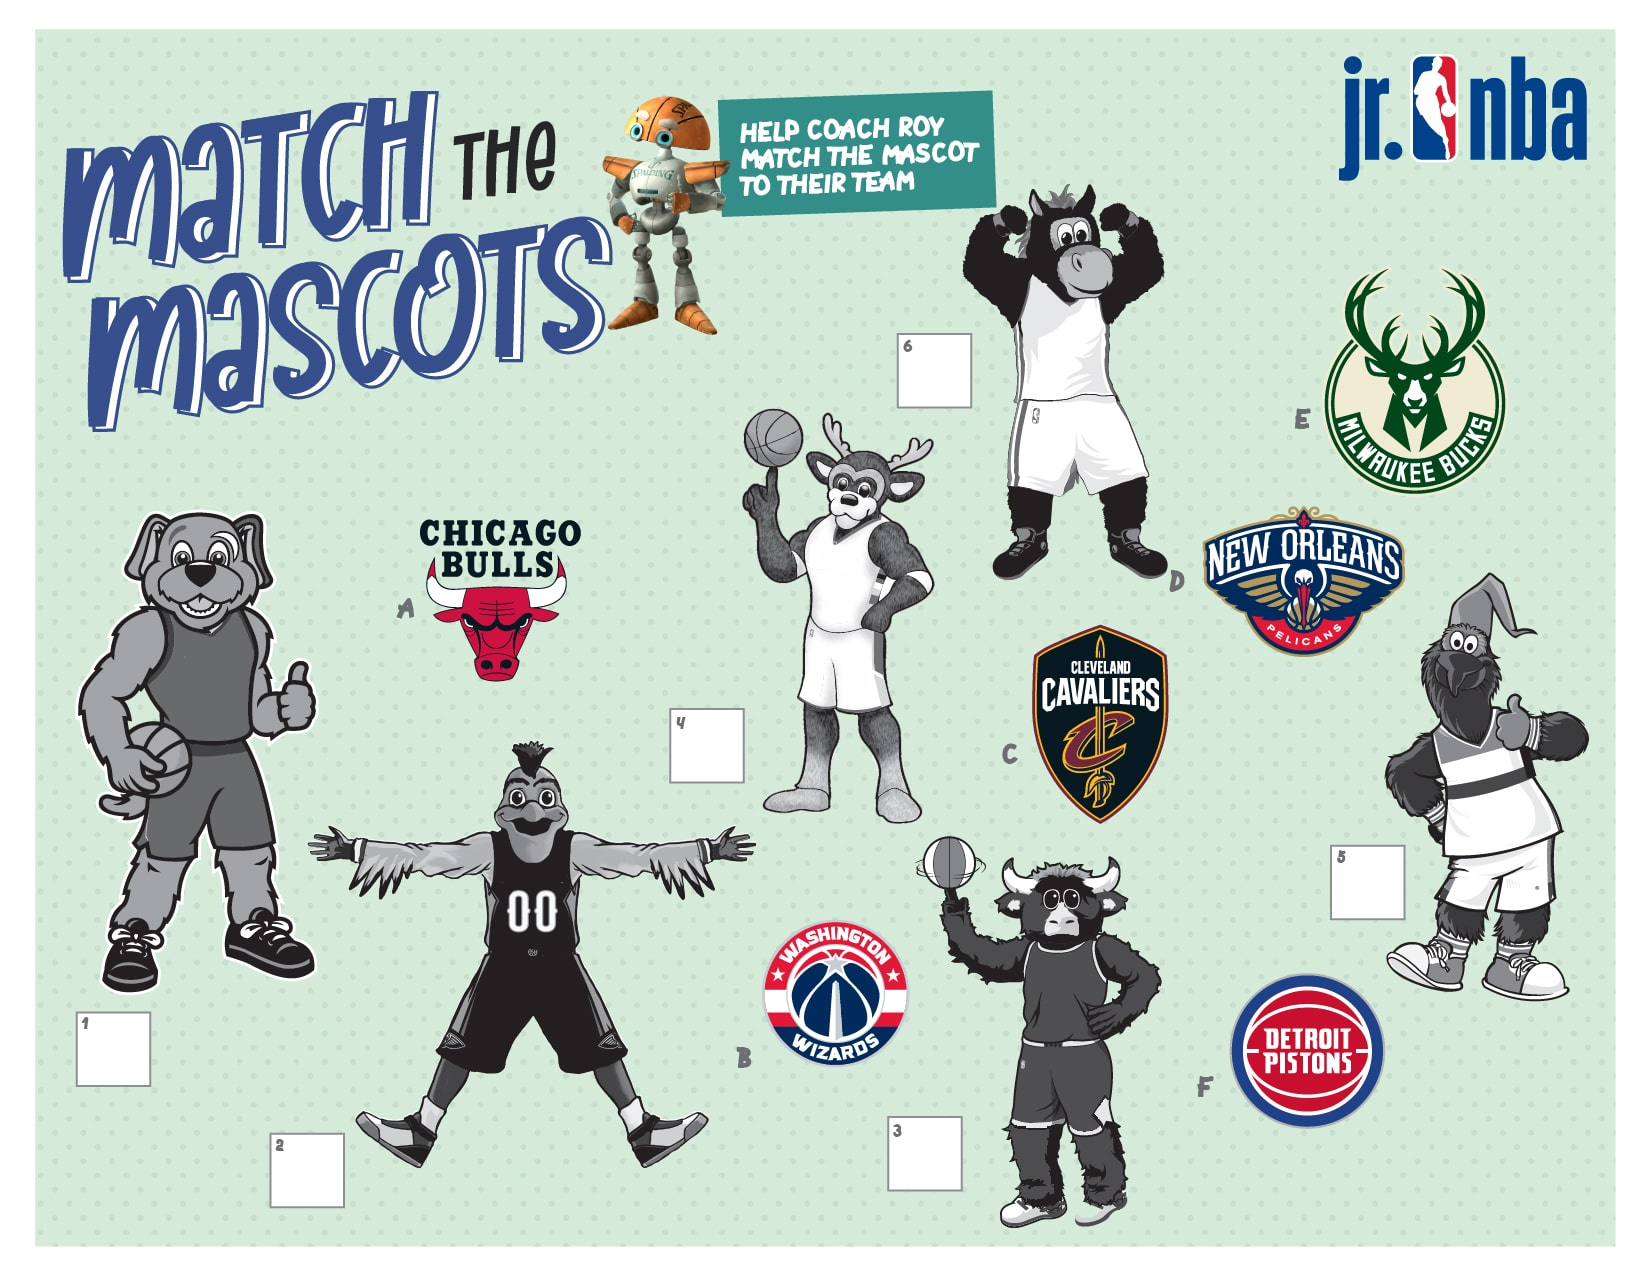 This image is for the Activity - Match the Mascots